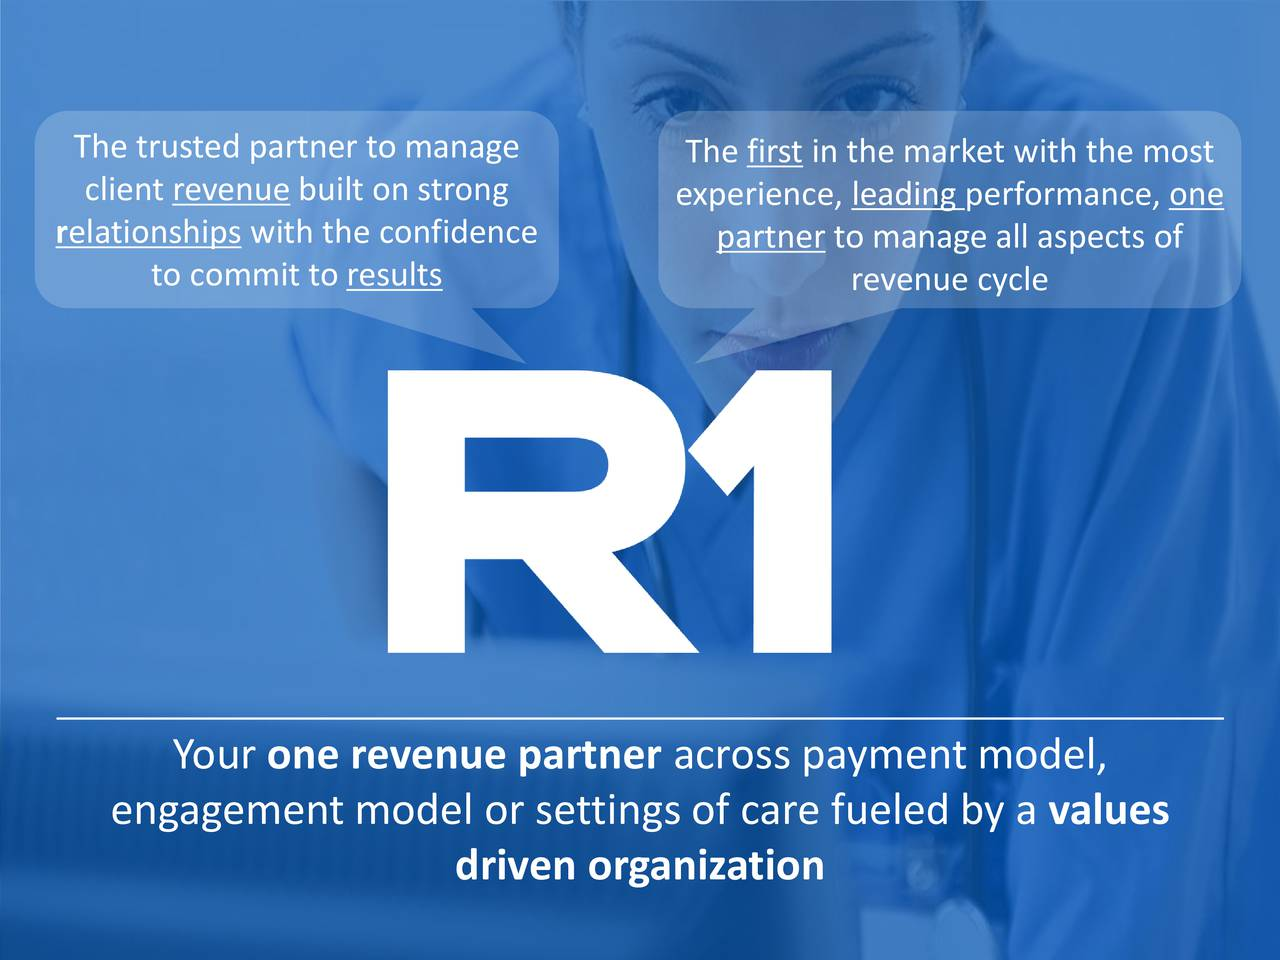 client revenue built on strong experience, leading performance, one relationships with the confidence partner to manage all aspects of to commit to results revenue cycle Your one revenue partner across payment model, engagement model or settings of care fueled by a values driven organization 3